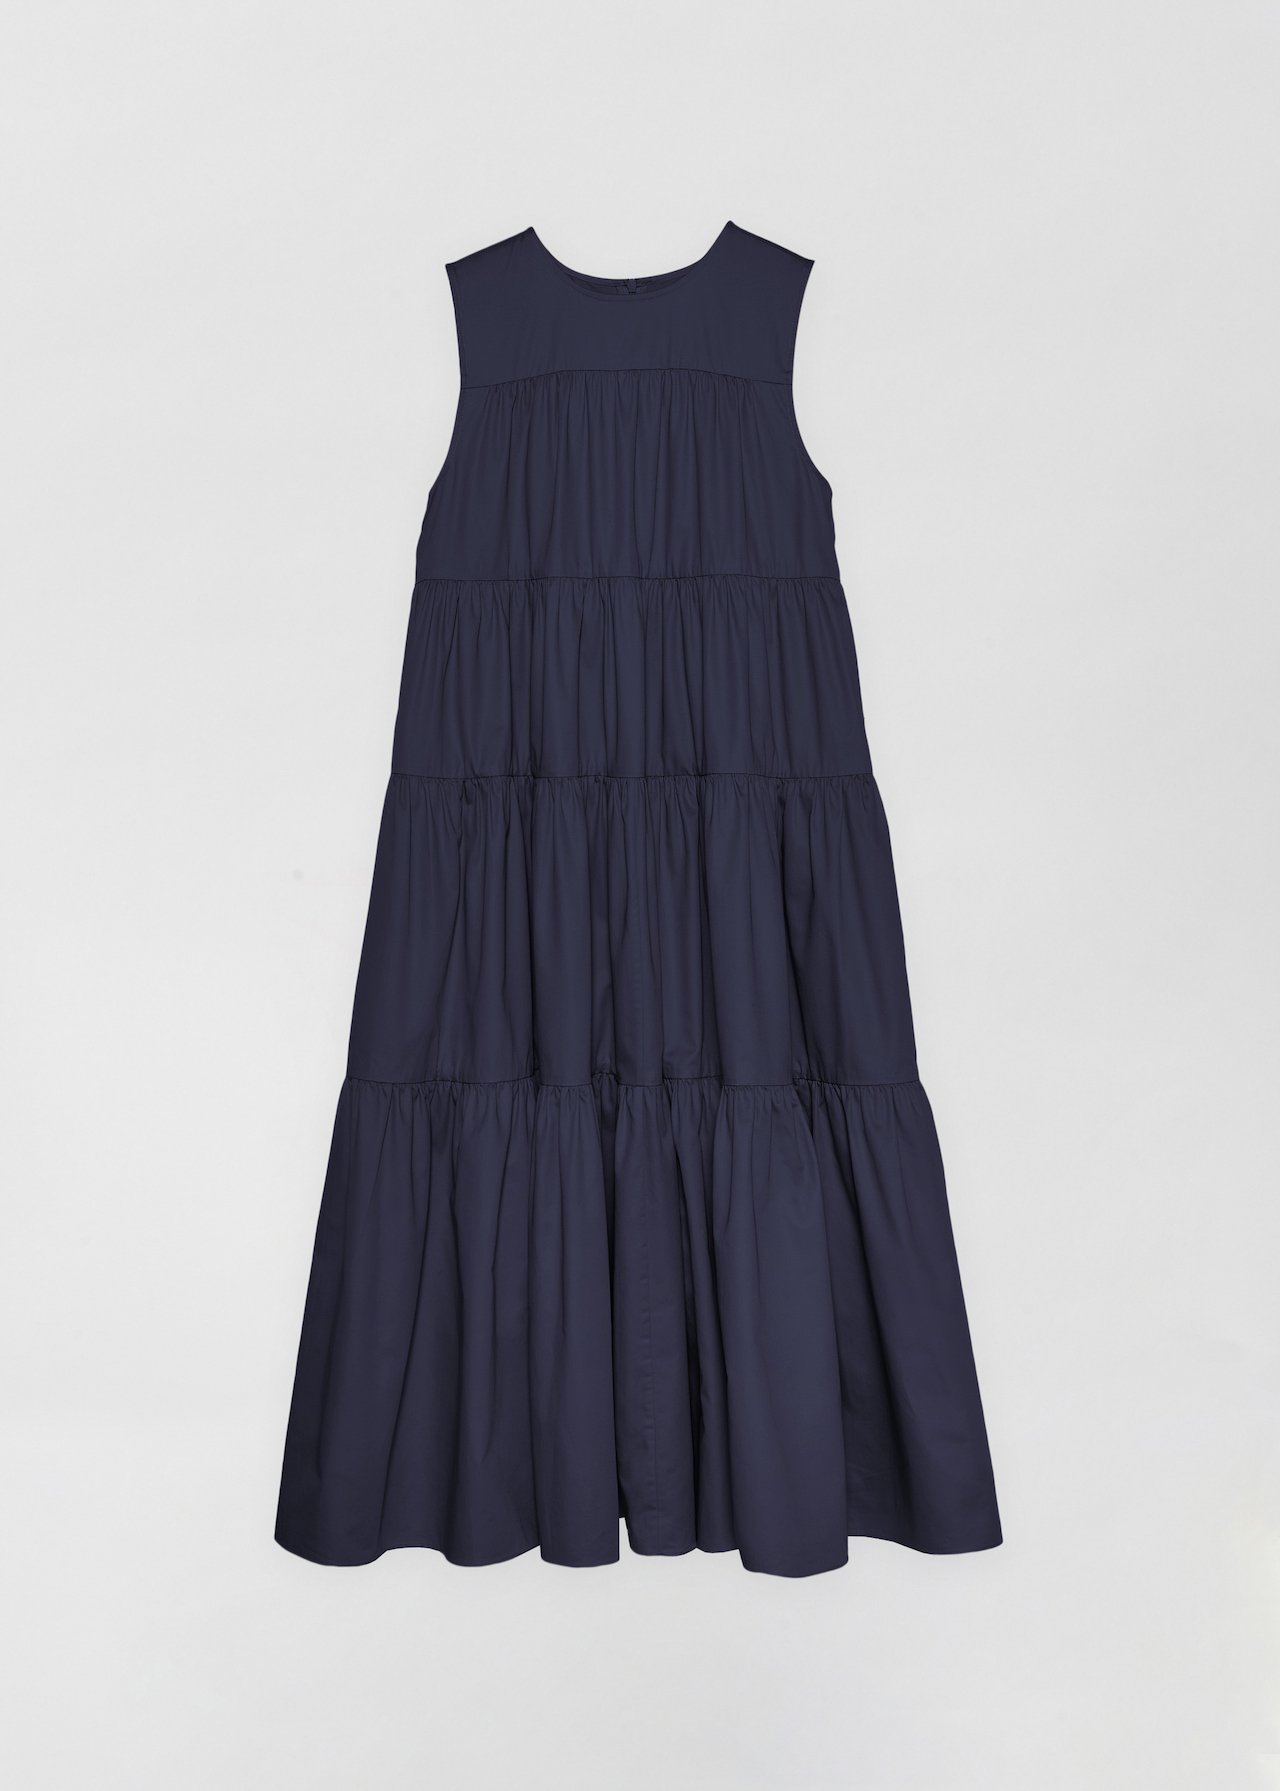 Sleeveless Tiered Dress - White in Navy by Co Collections